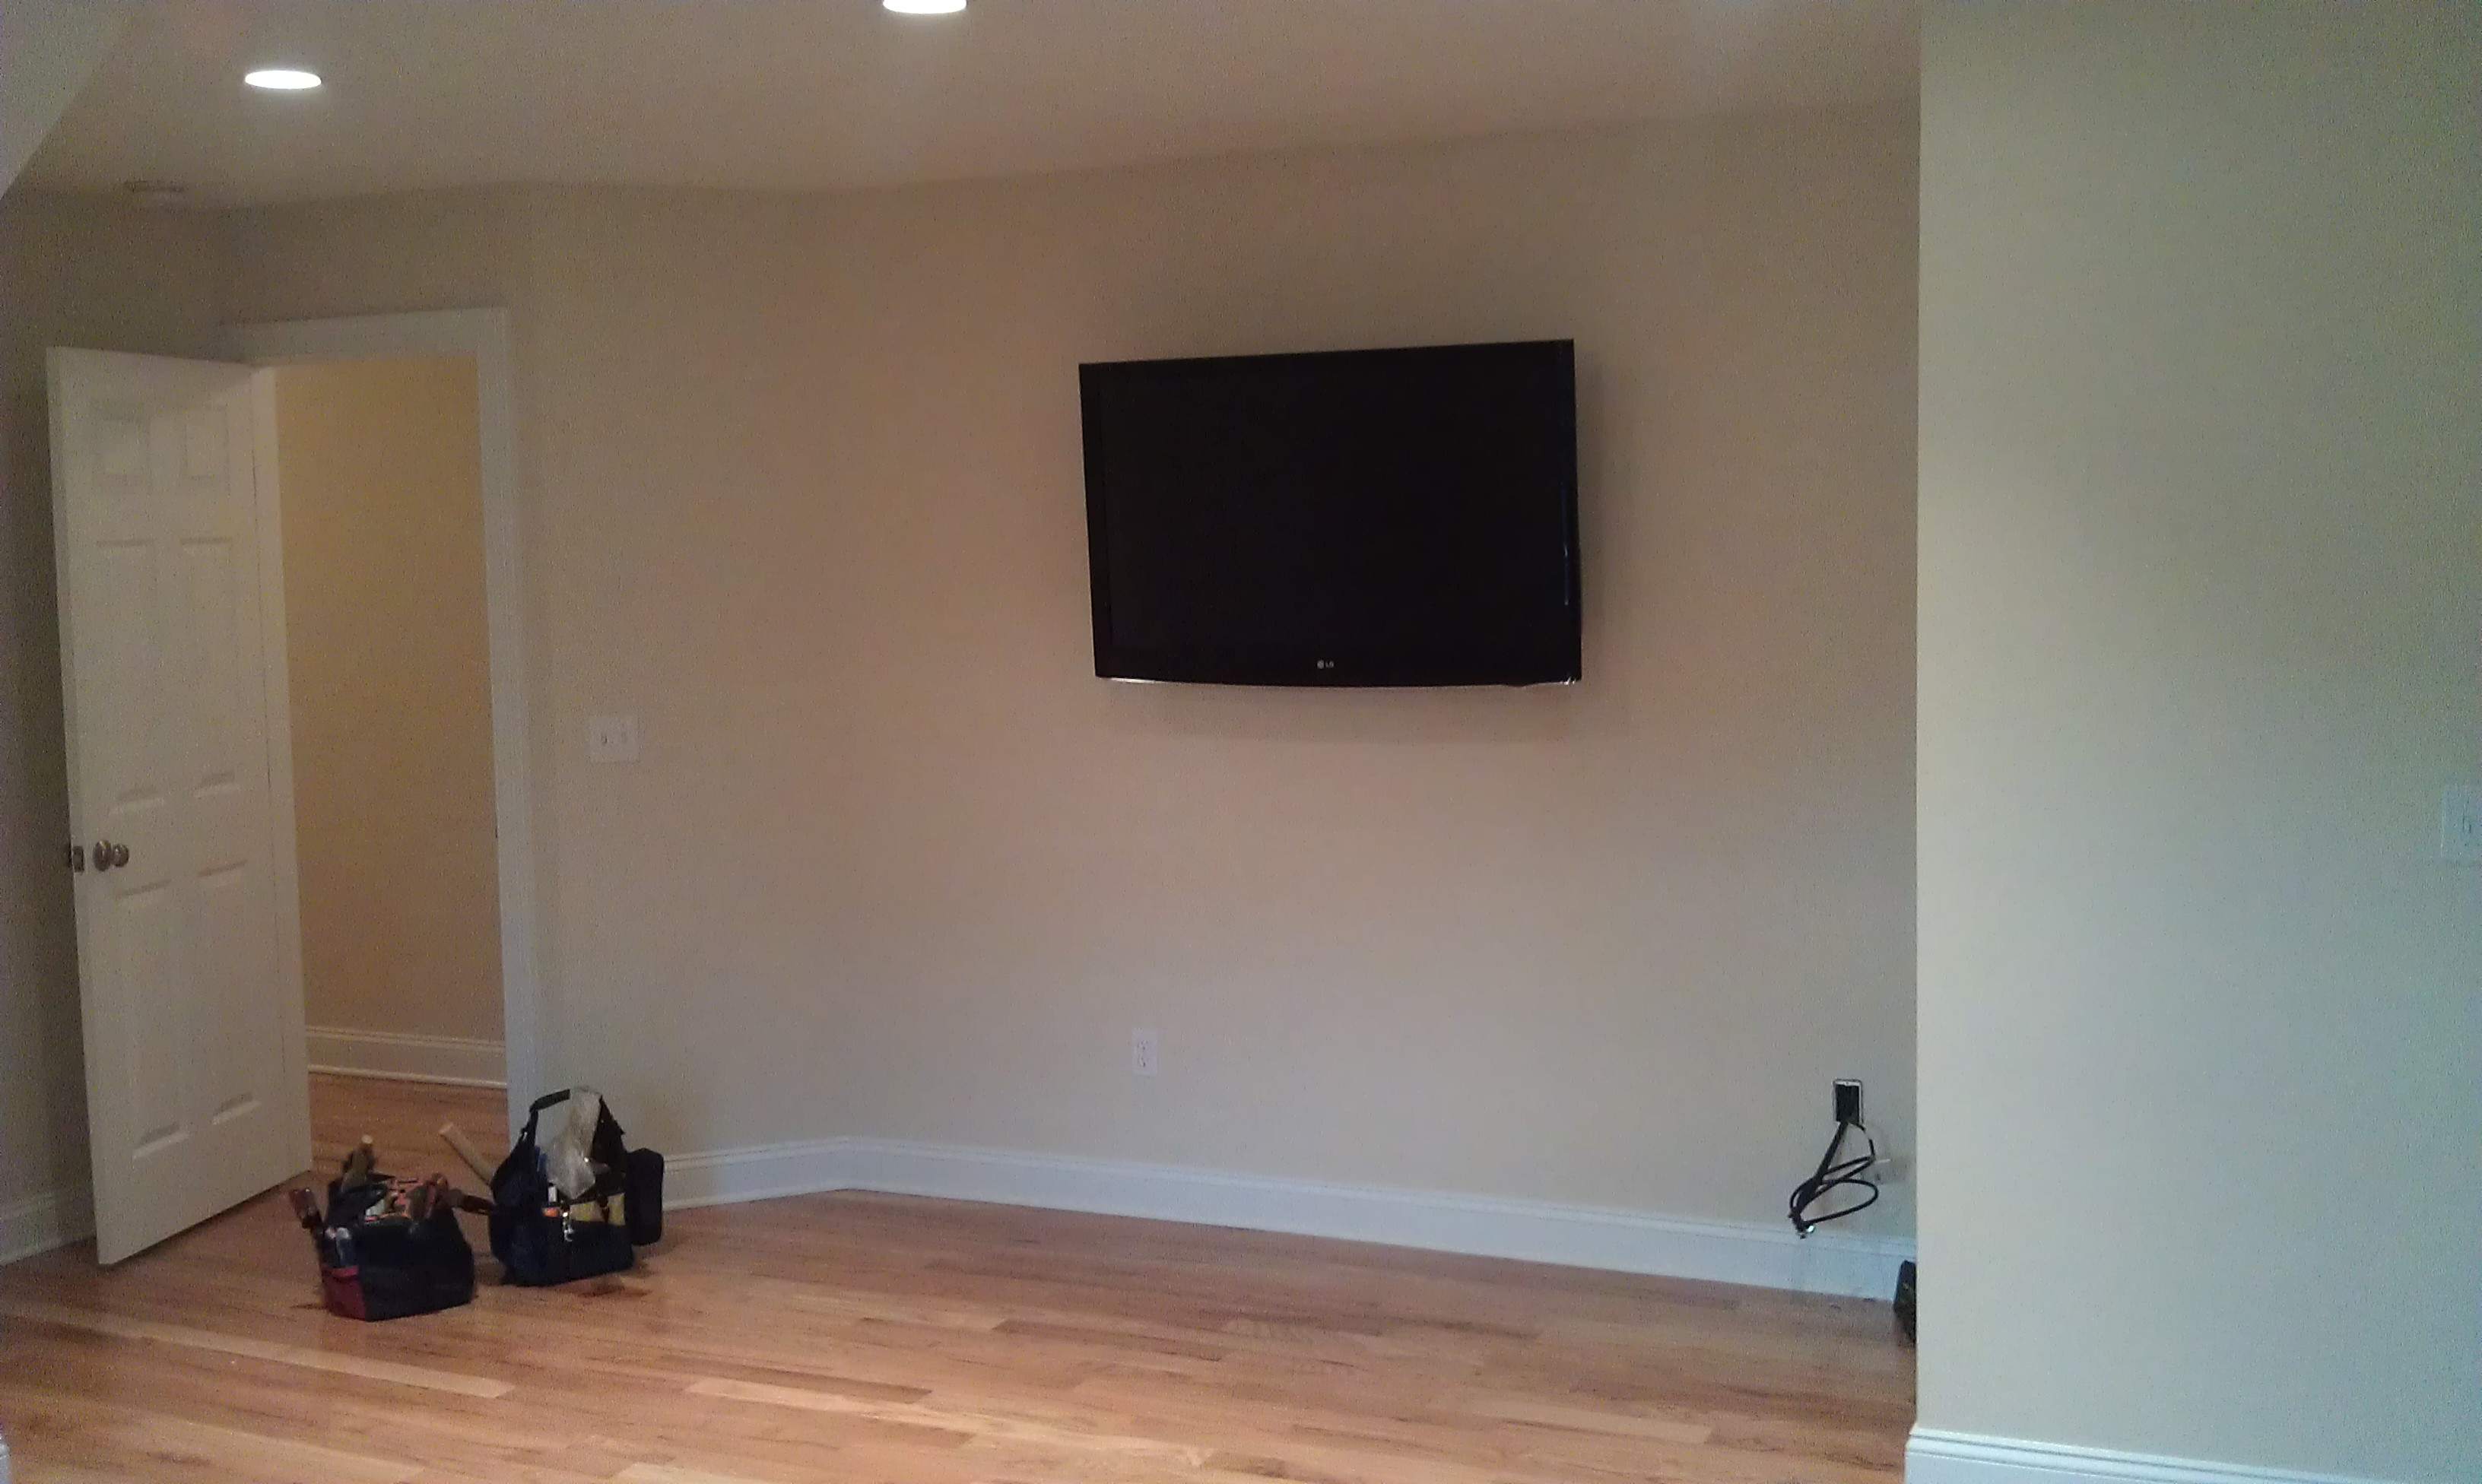 Fairfield CT mount tv on wall | Home Theater Installation